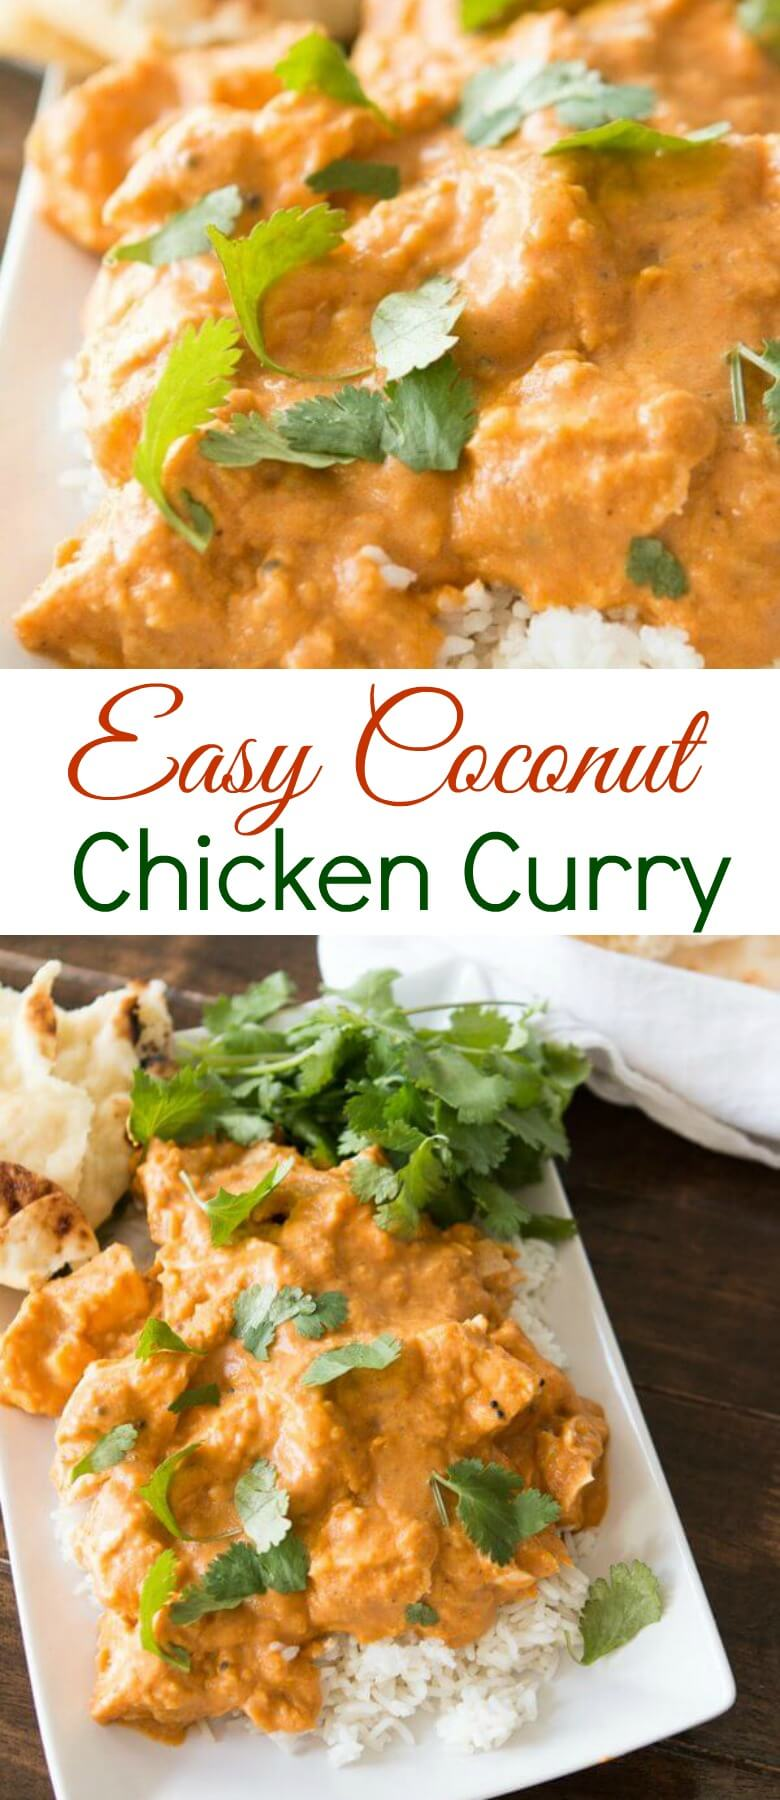 Whether you are an adventurous foodie or a ground beef and rice casserole meat and potatoes type this easy coconut chicken curry is totally for you.